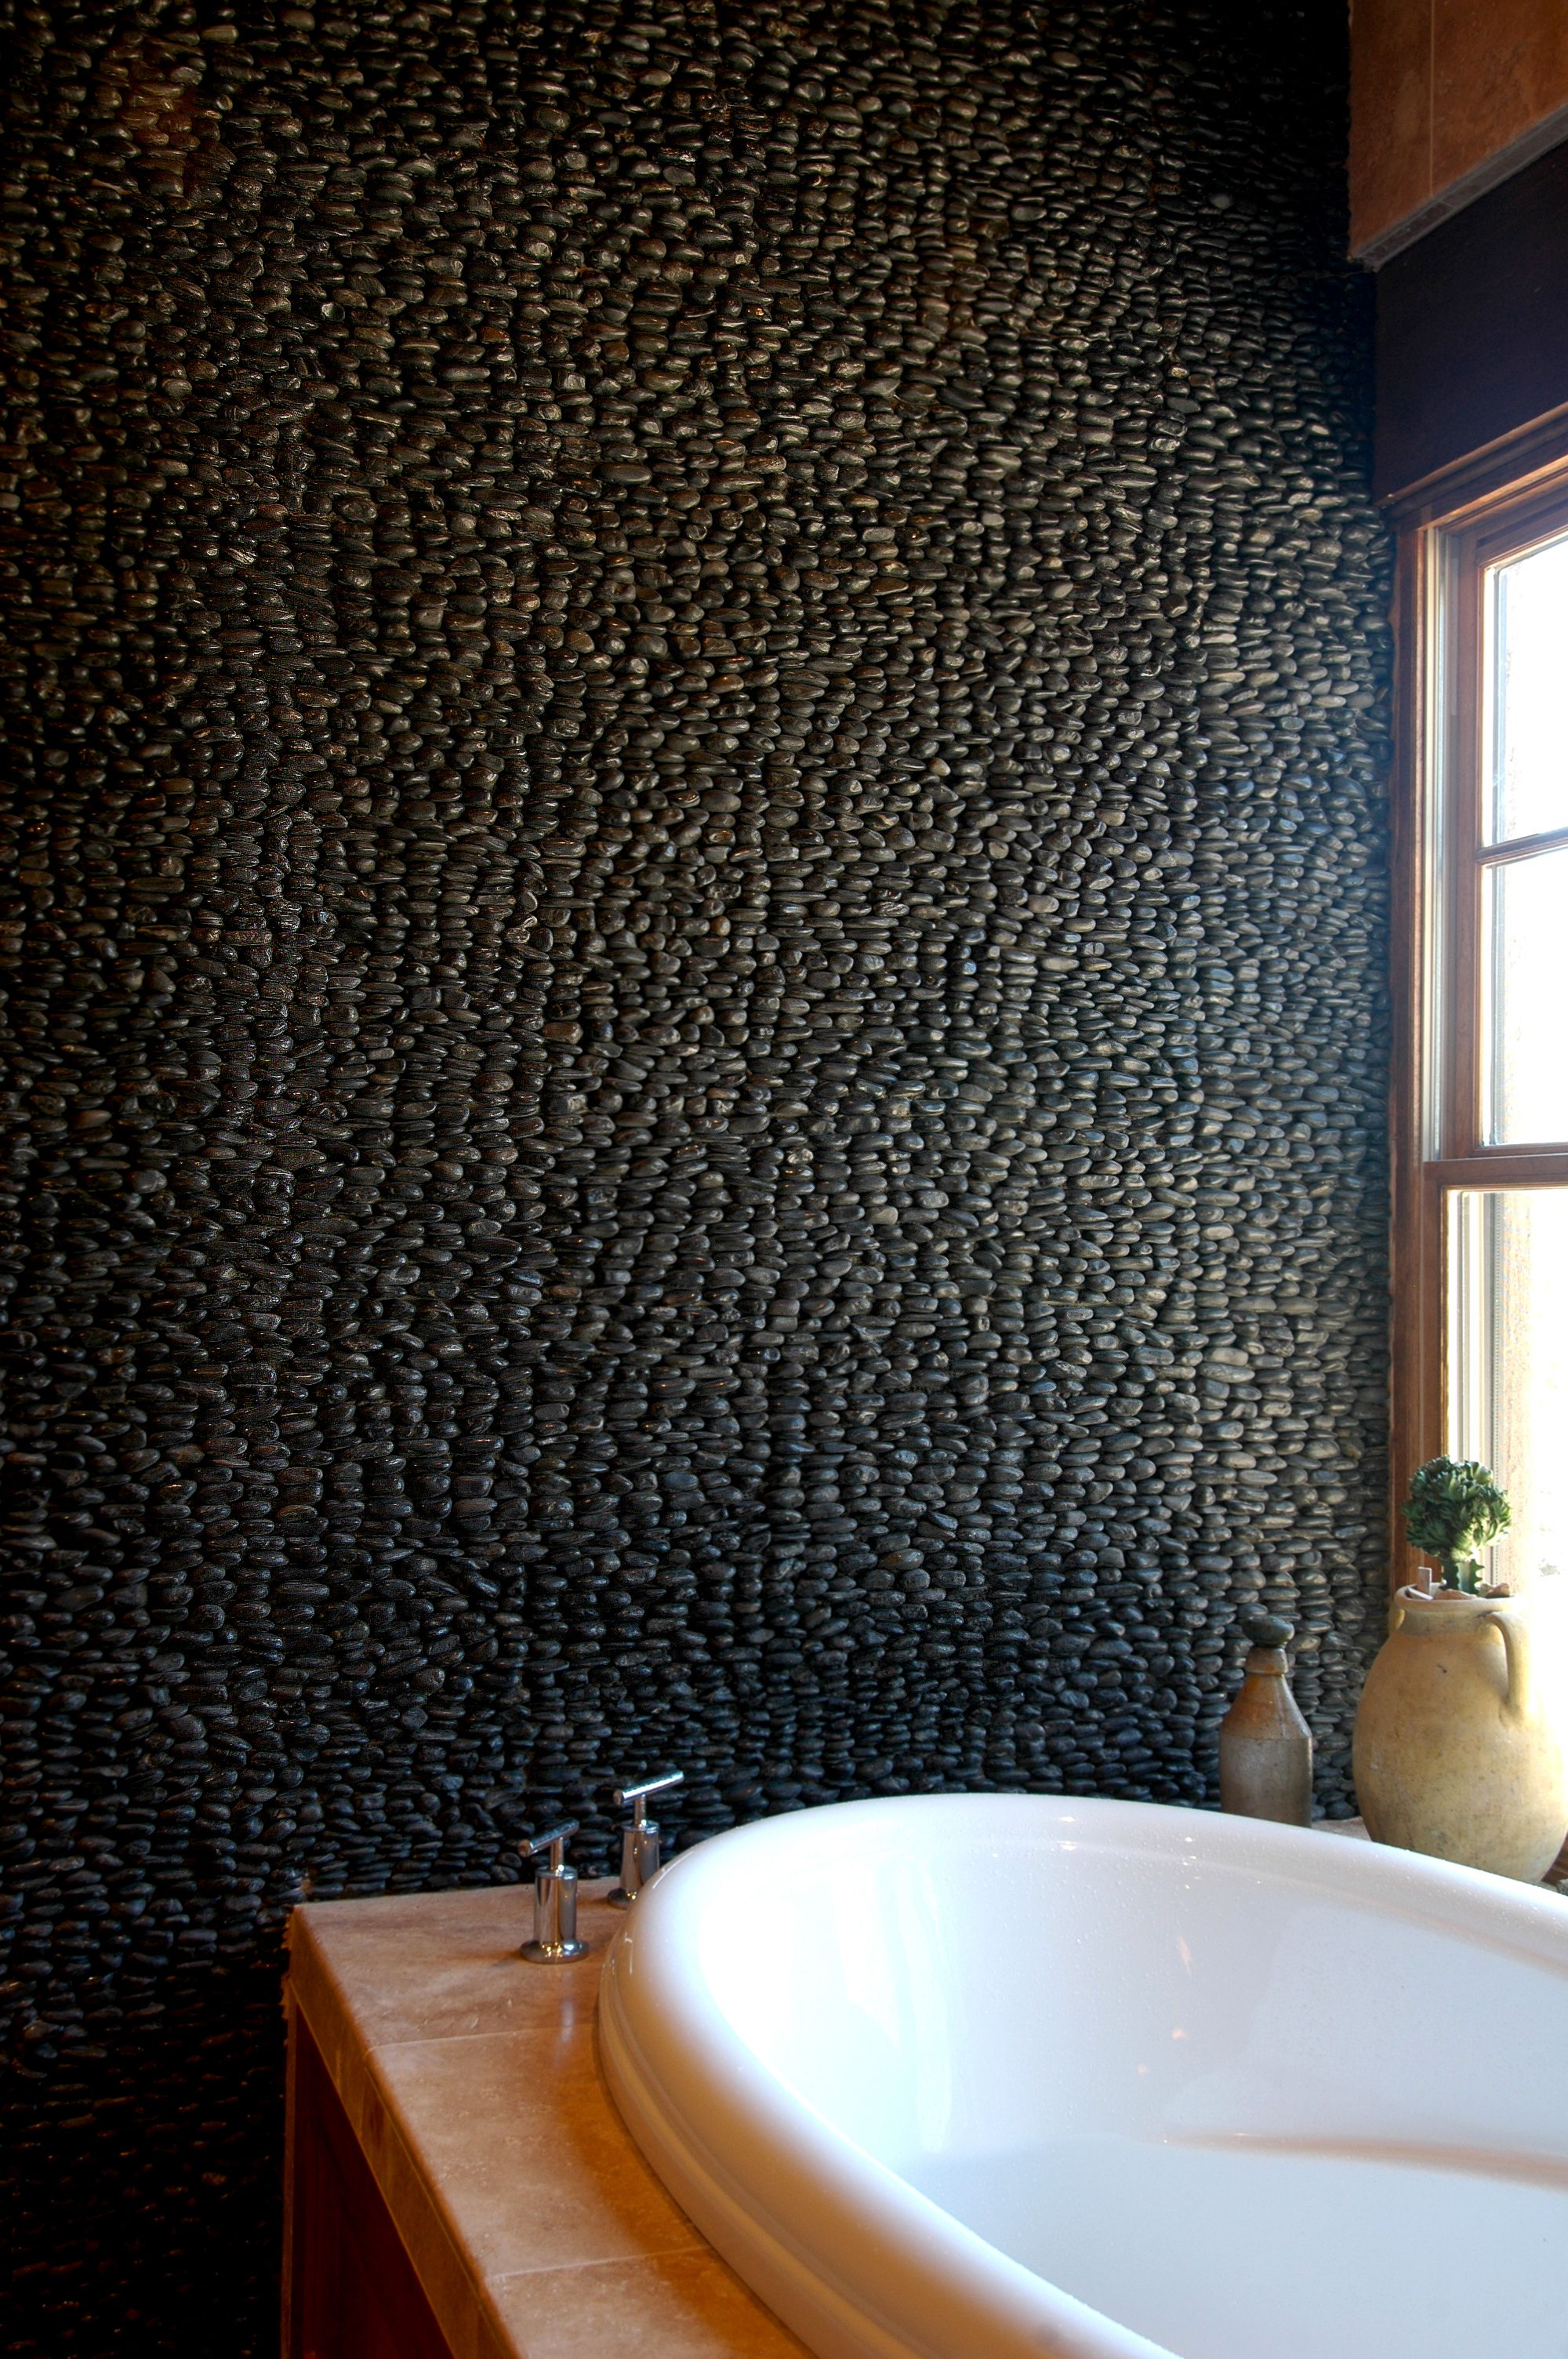 Charcoal Black Standing Pebble Tile Bath Pinterest